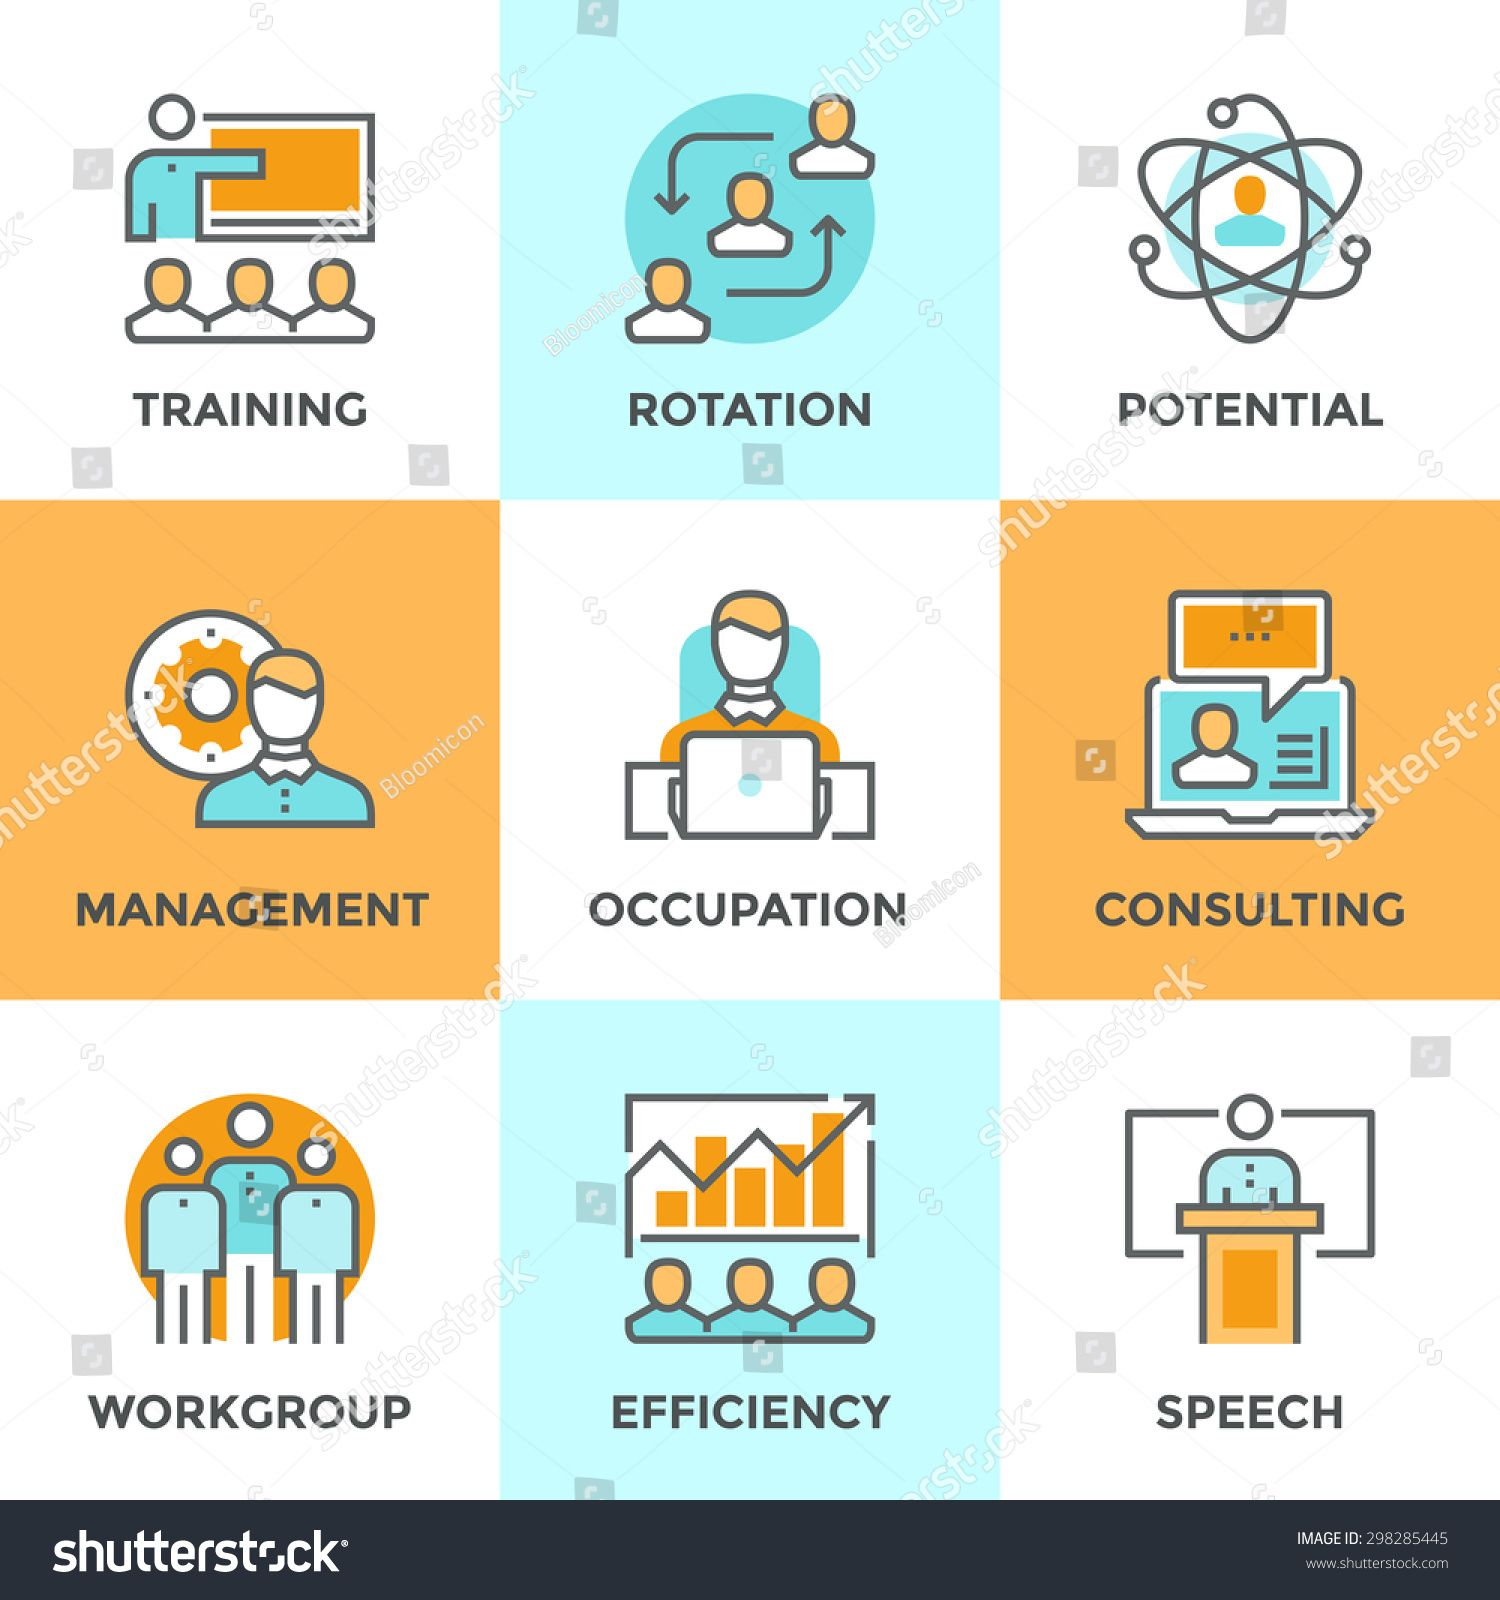 Line Icons Set With Flat Design Elements Of Corporate Management Business People Training Online Professional Team Skills Business Icon Corporate Management